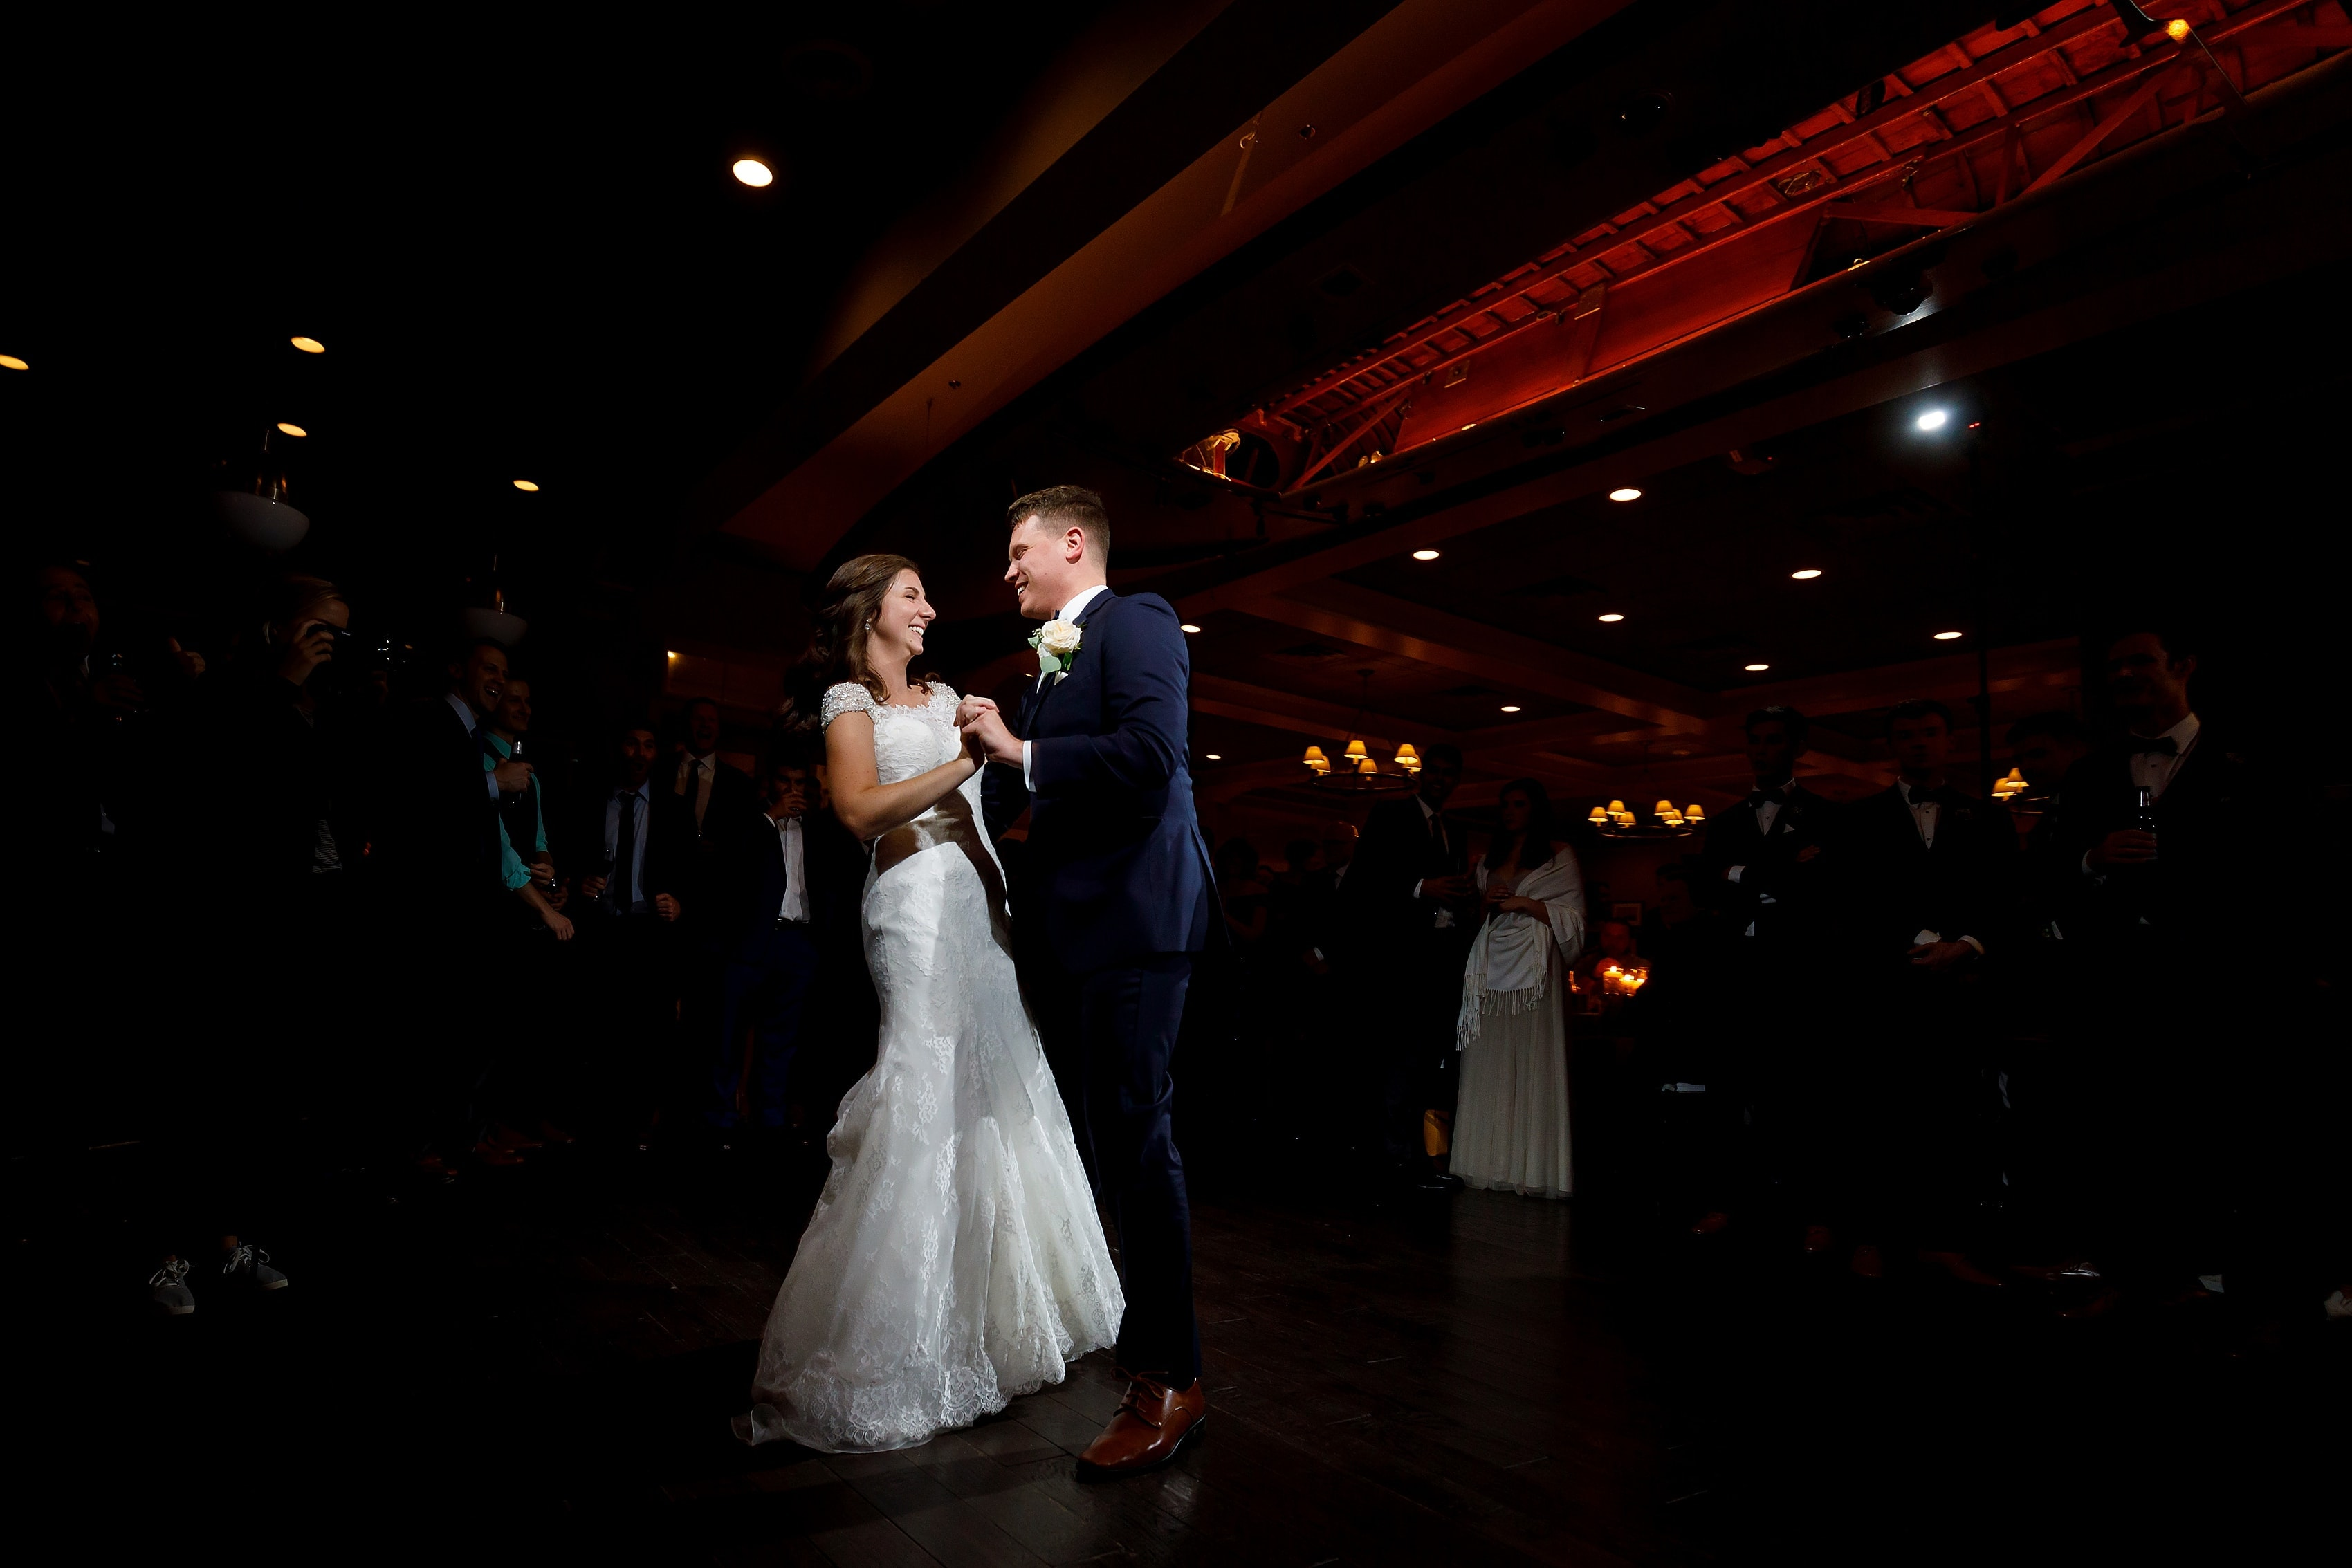 Bride and groom share first dance at Lake Geneva Yacht Club in Lake Geneva, Wisconsin